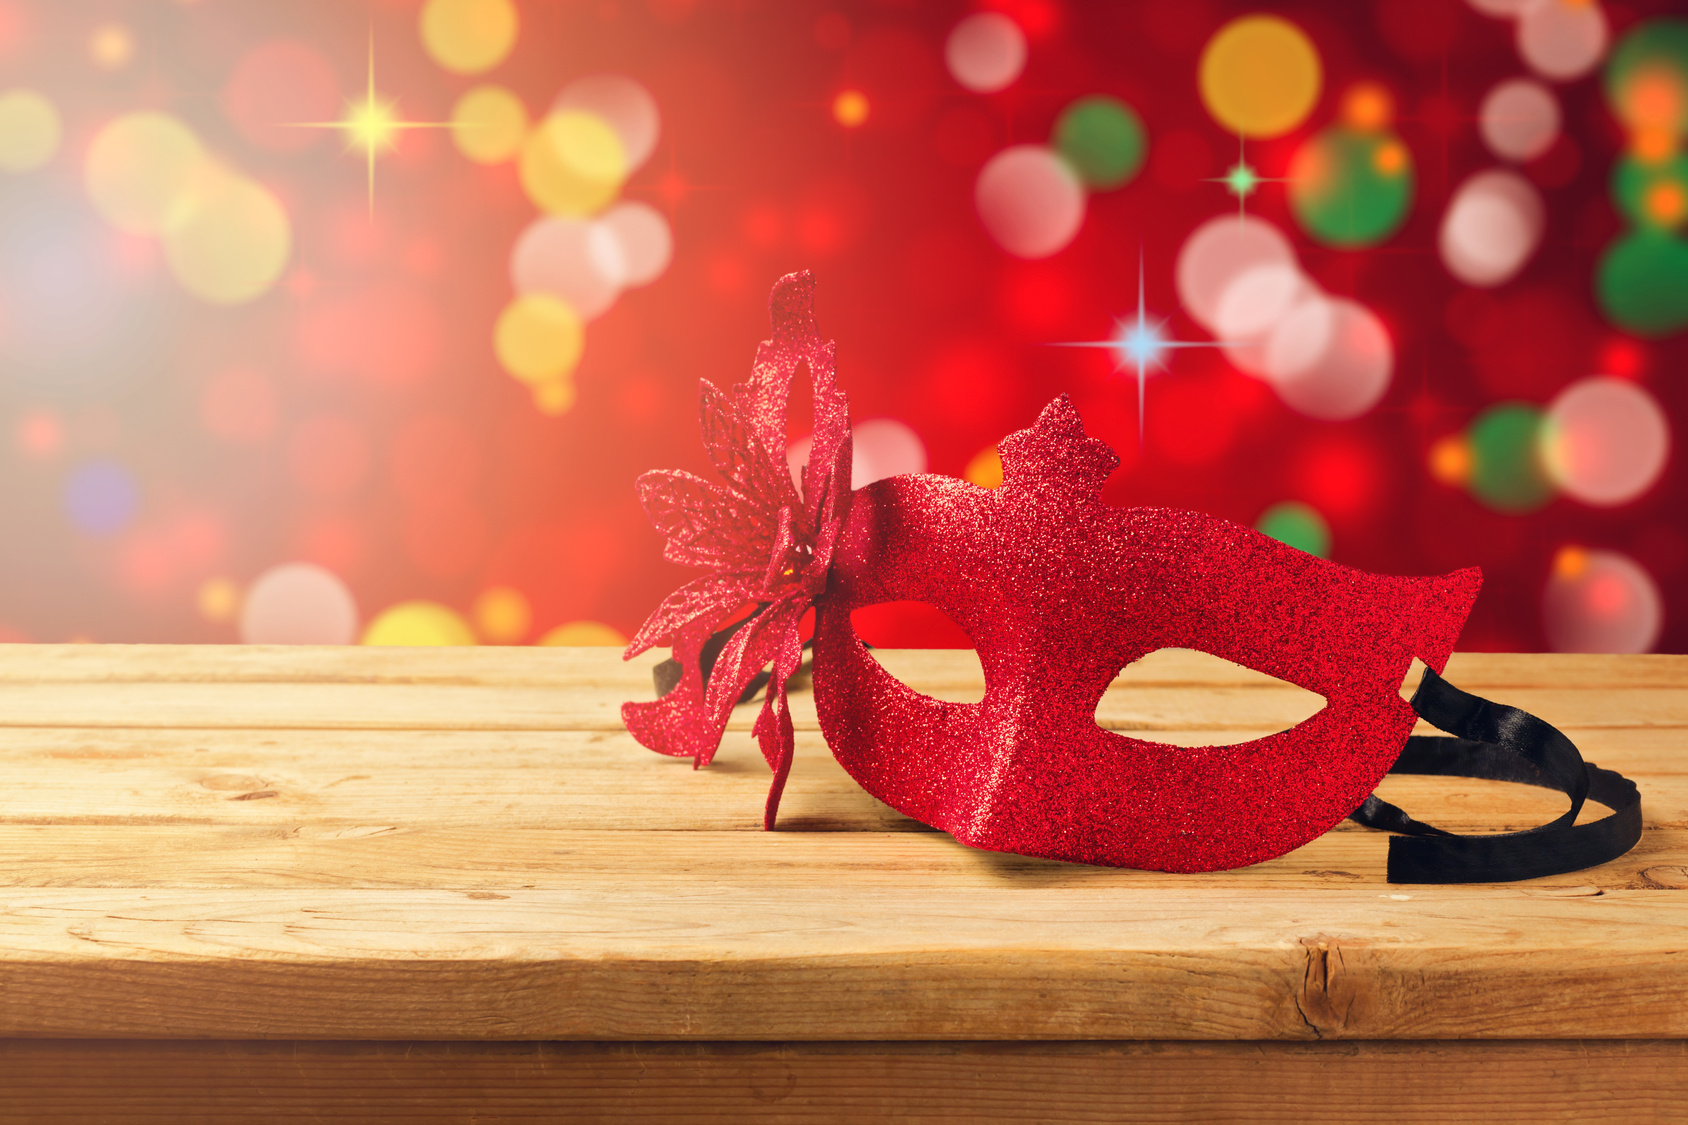 Carnival mask on wooden table over bokeh background